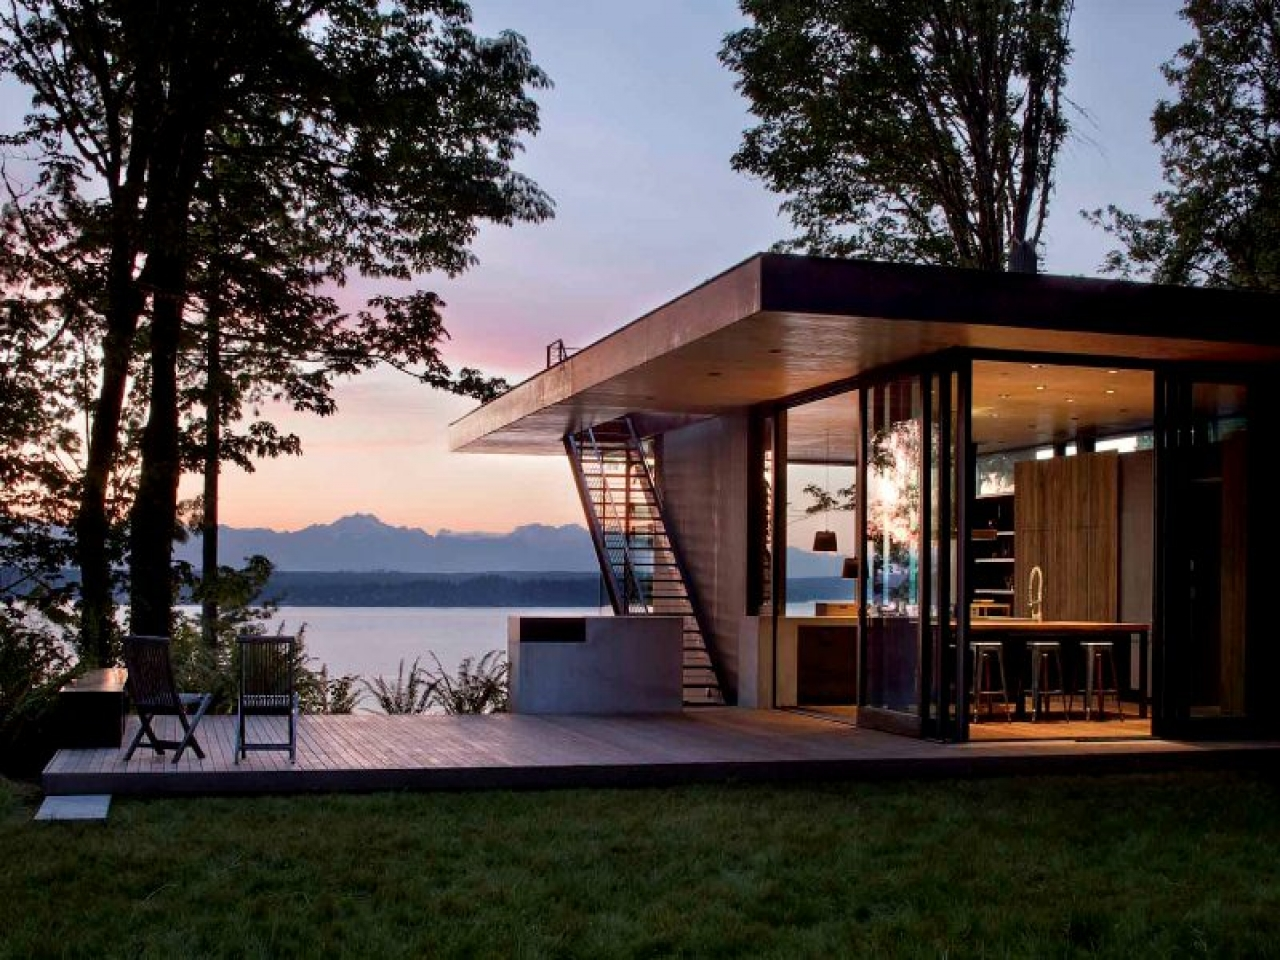 Lake Home Design Ideas: Contemporary Lake House Plans Modern Lake House Design